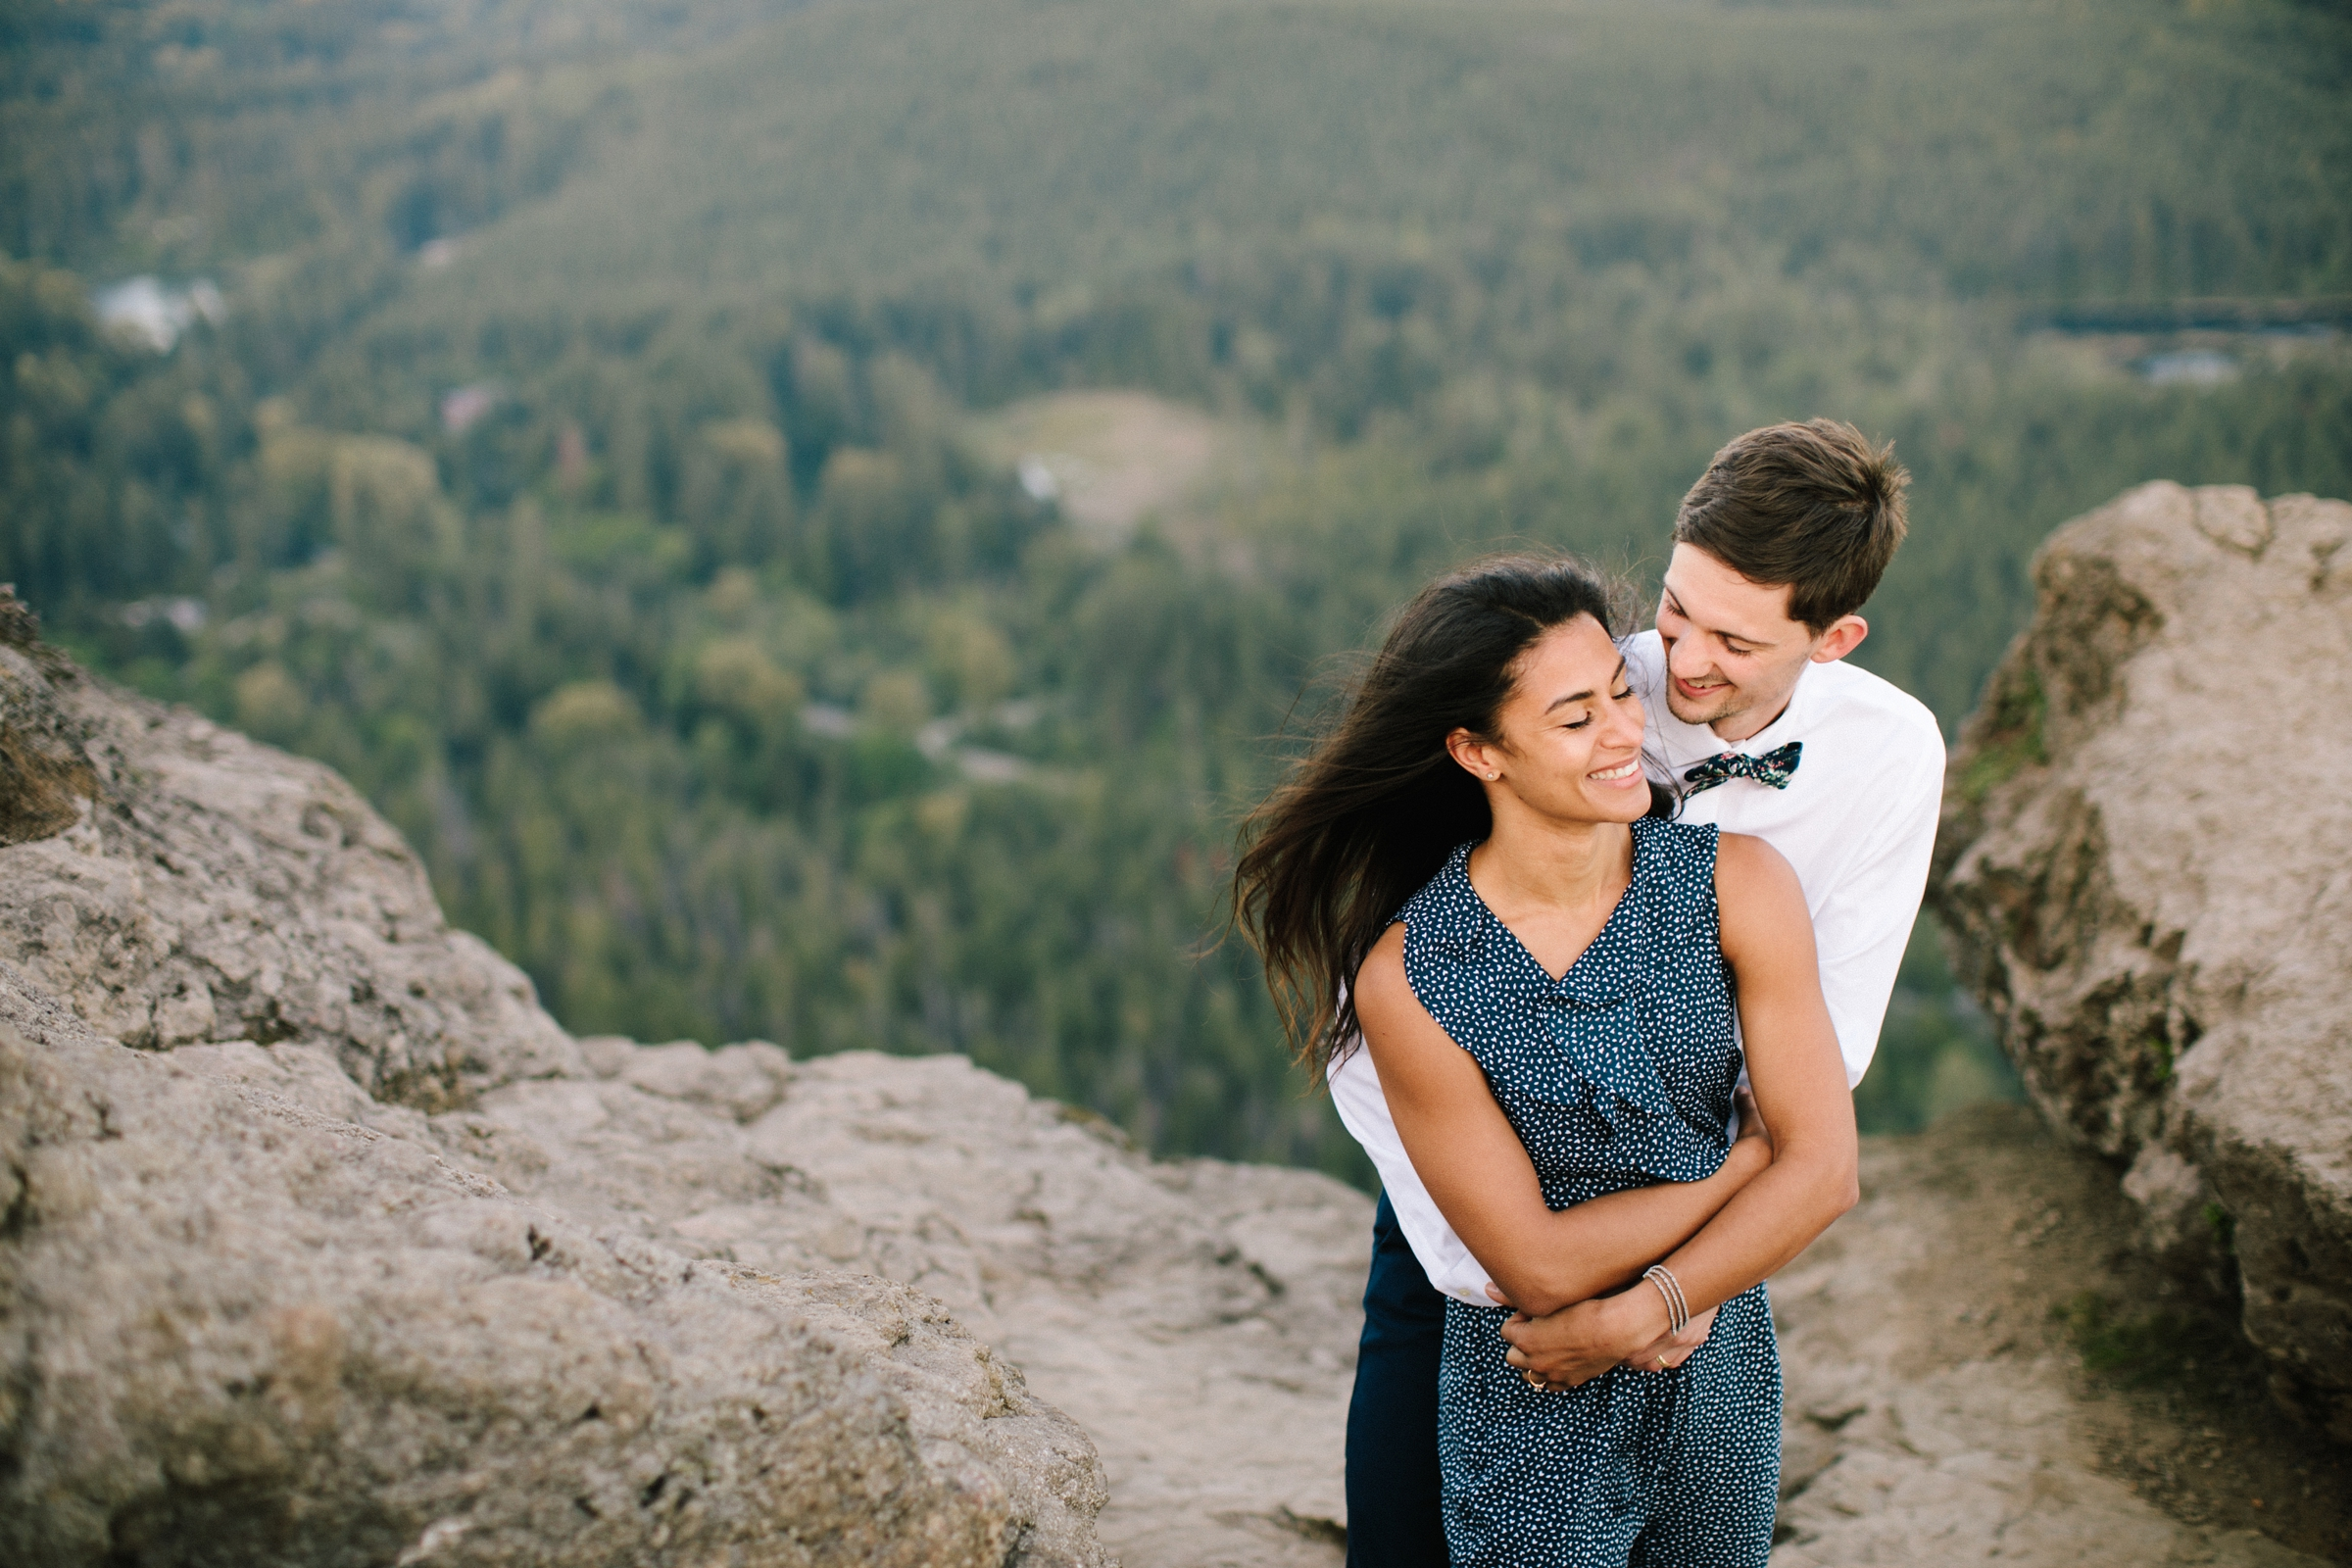 adventure-mountain-top-elopement-photographer-pnw-seattle-washington-wedding-engagement-hike-photography-catie-bergman_0016.jpg